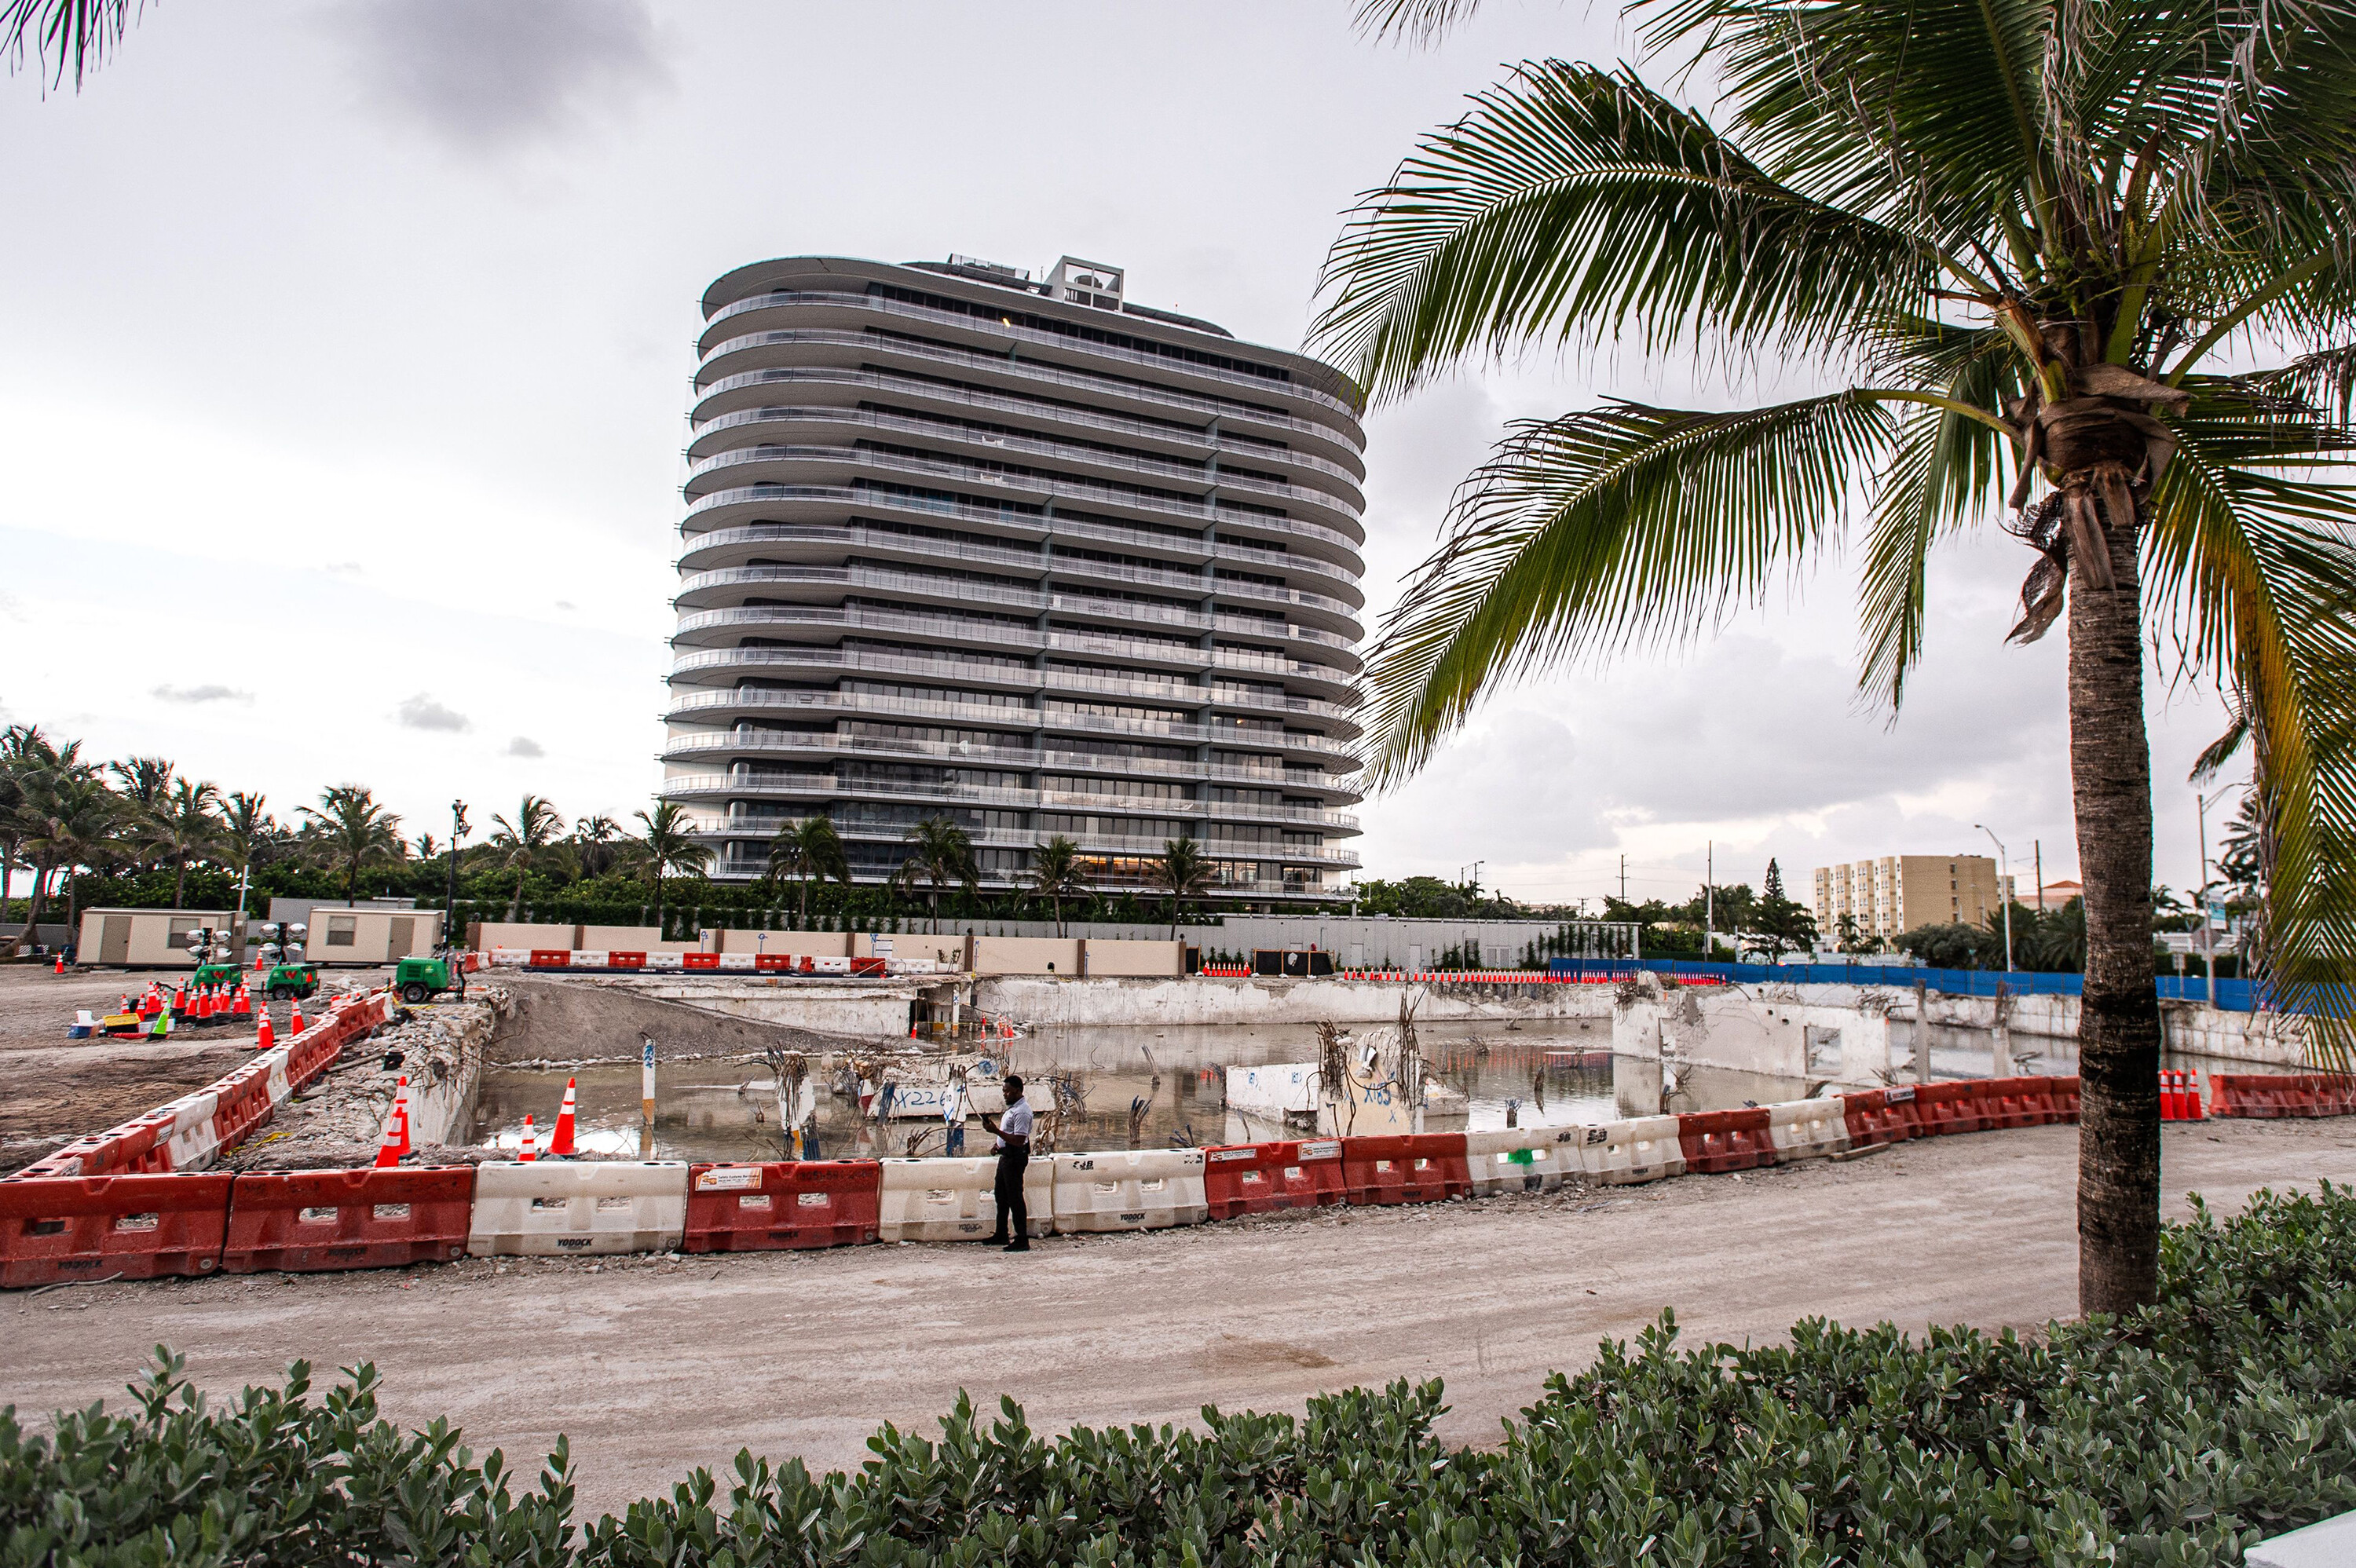 Miami-Dade police to take over search efforts at the Surfside condo building collapse site